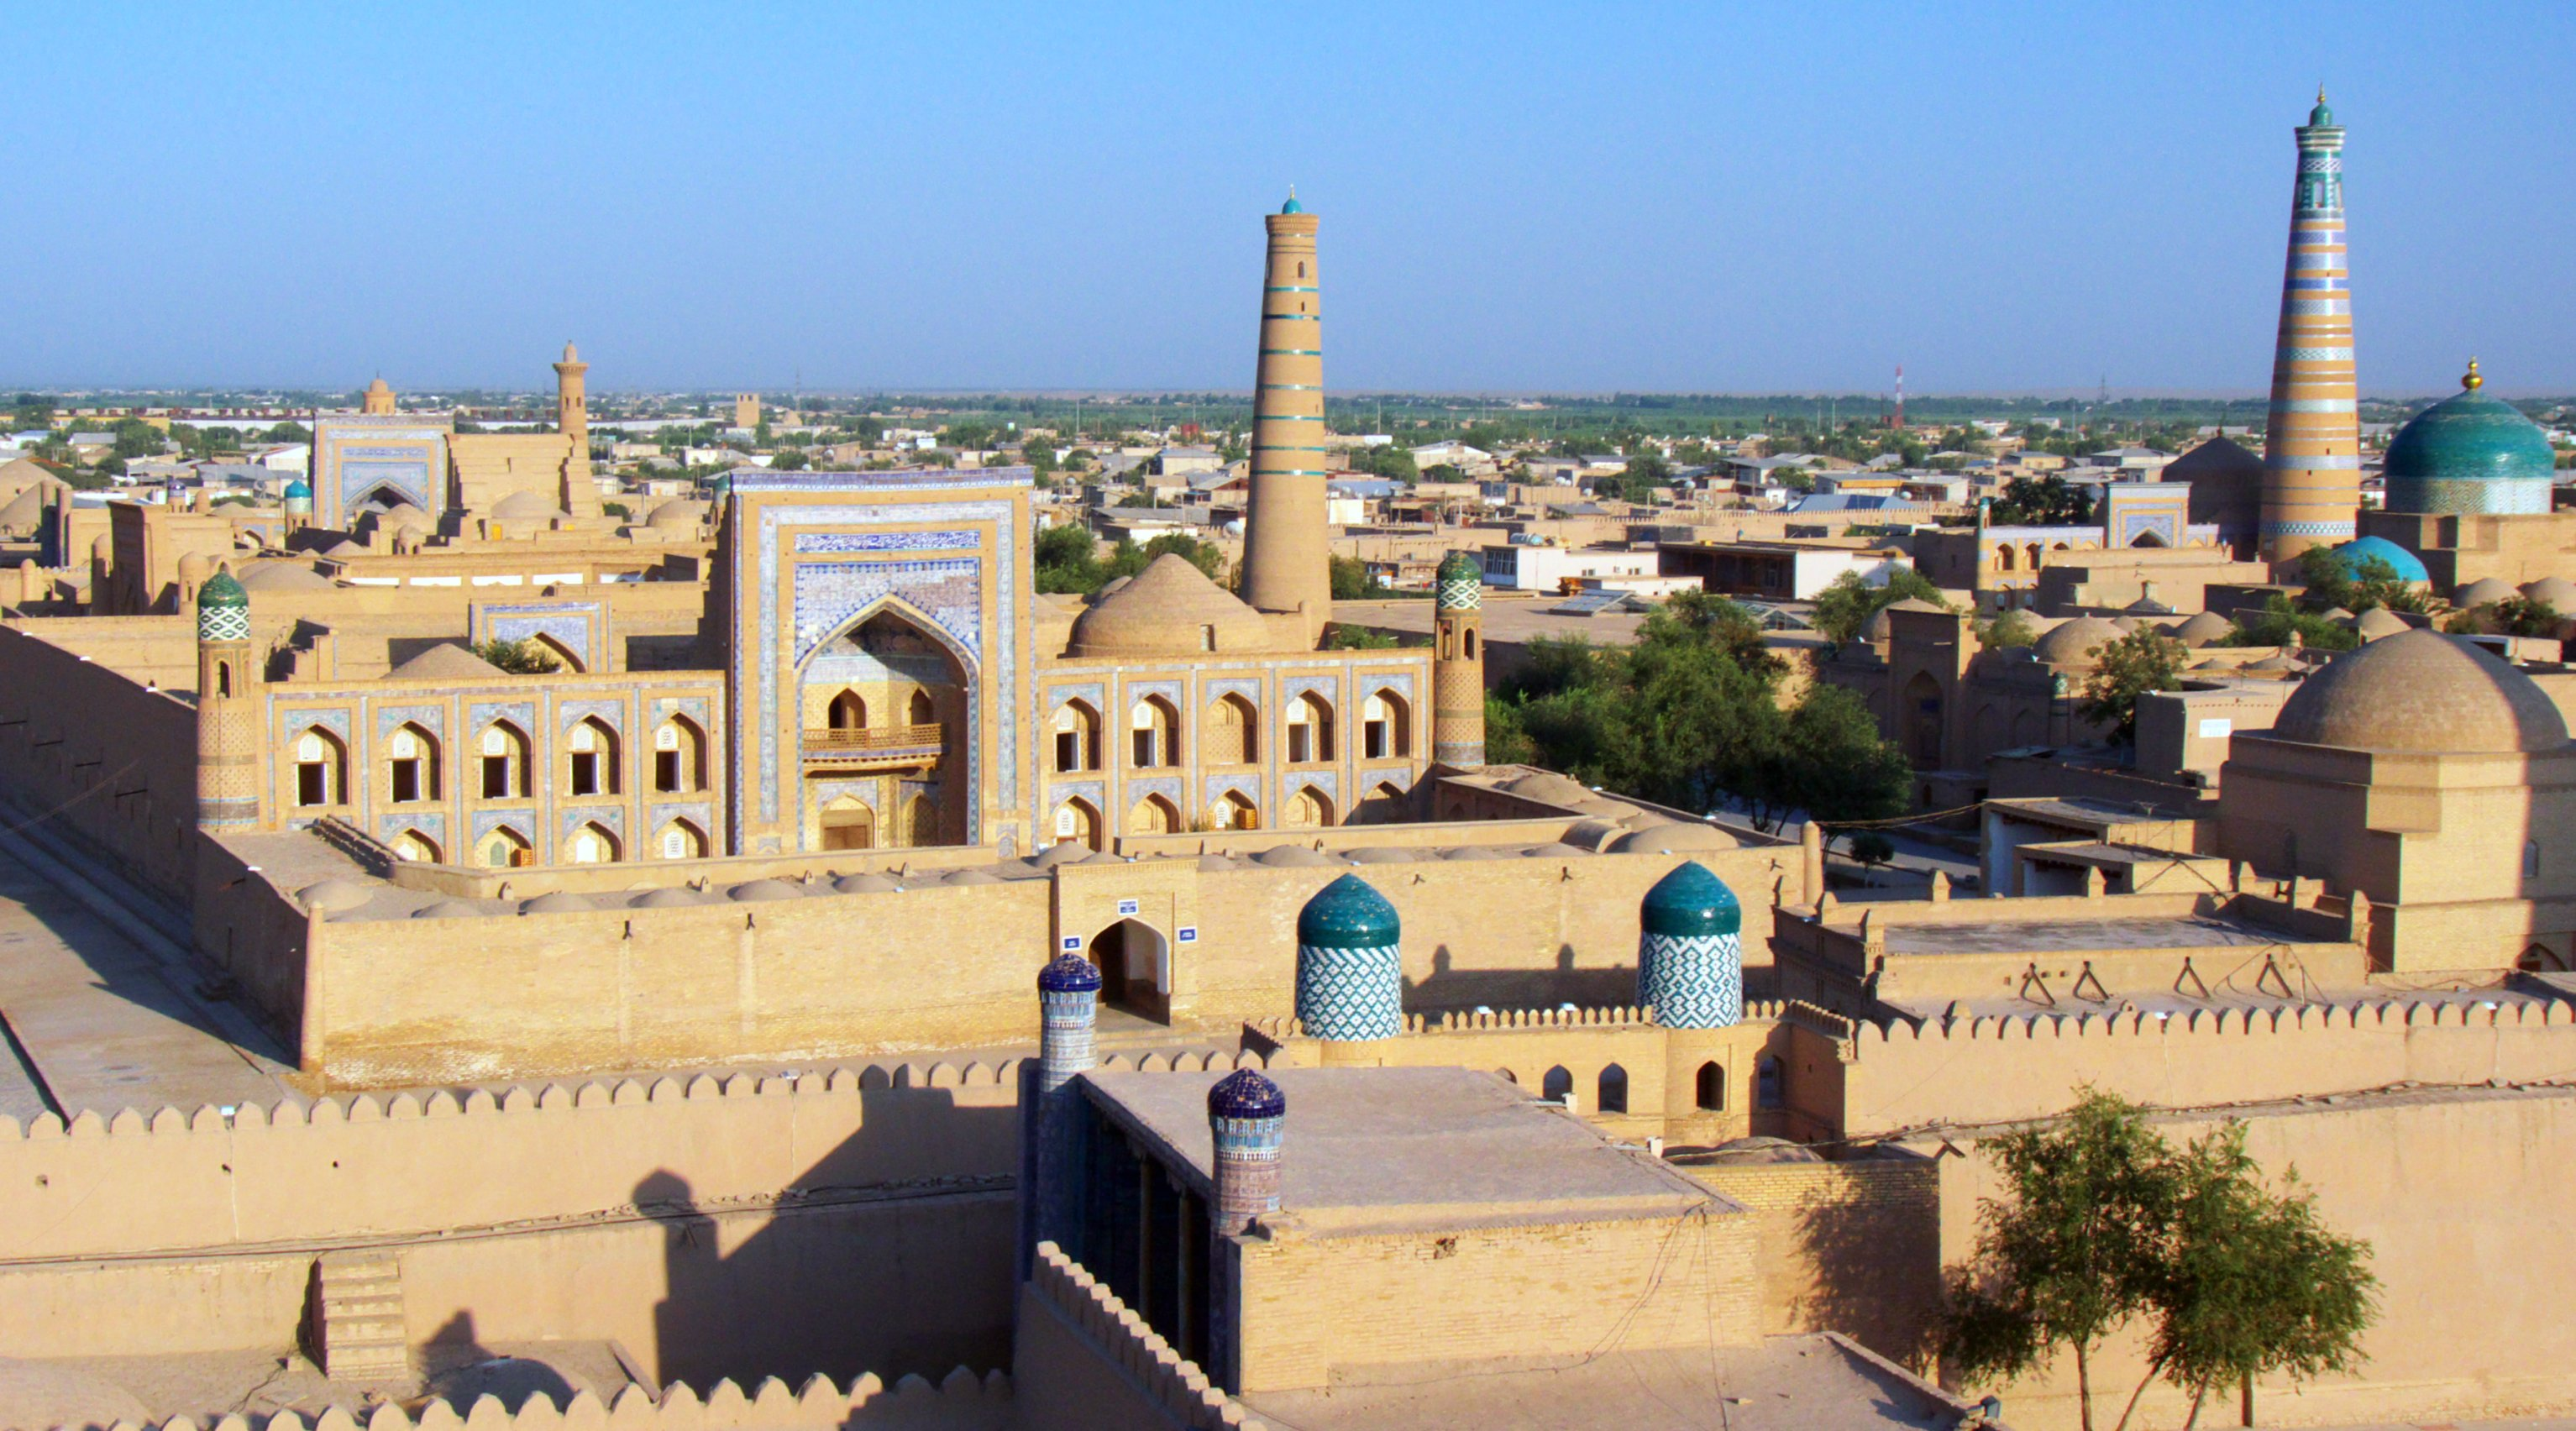 File:View from the city walls, Khiva (4934484894).jpg - Wikimedia Commons